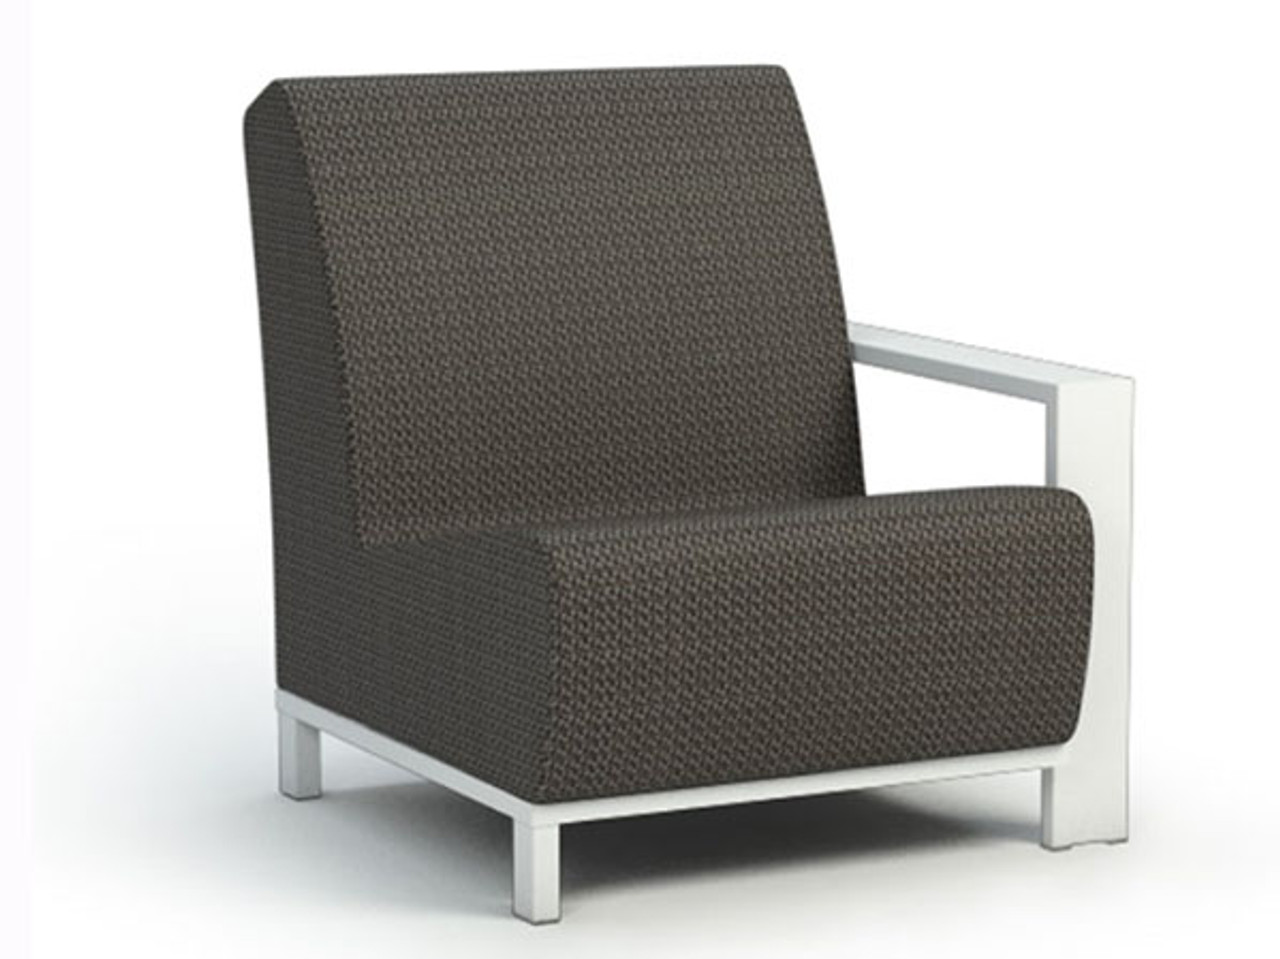 Grace Air Aluminum Left Arm Chat Chair on benchcraft patio furniture, cascade creek patio furniture, hampton bay patio furniture, meadowcraft patio furniture, kensington patio furniture, samsonite patio furniture, metal patio furniture, collapsible patio furniture, aafes patio furniture, huguenot patio furniture, bentwood patio furniture, aluminum patio furniture, outsunny patio furniture, repurposed patio furniture, bedford patio furniture, la-z-boy patio furniture, brown jordan patio furniture, mallin patio furniture, pool patio furniture, crimson casual patio furniture,